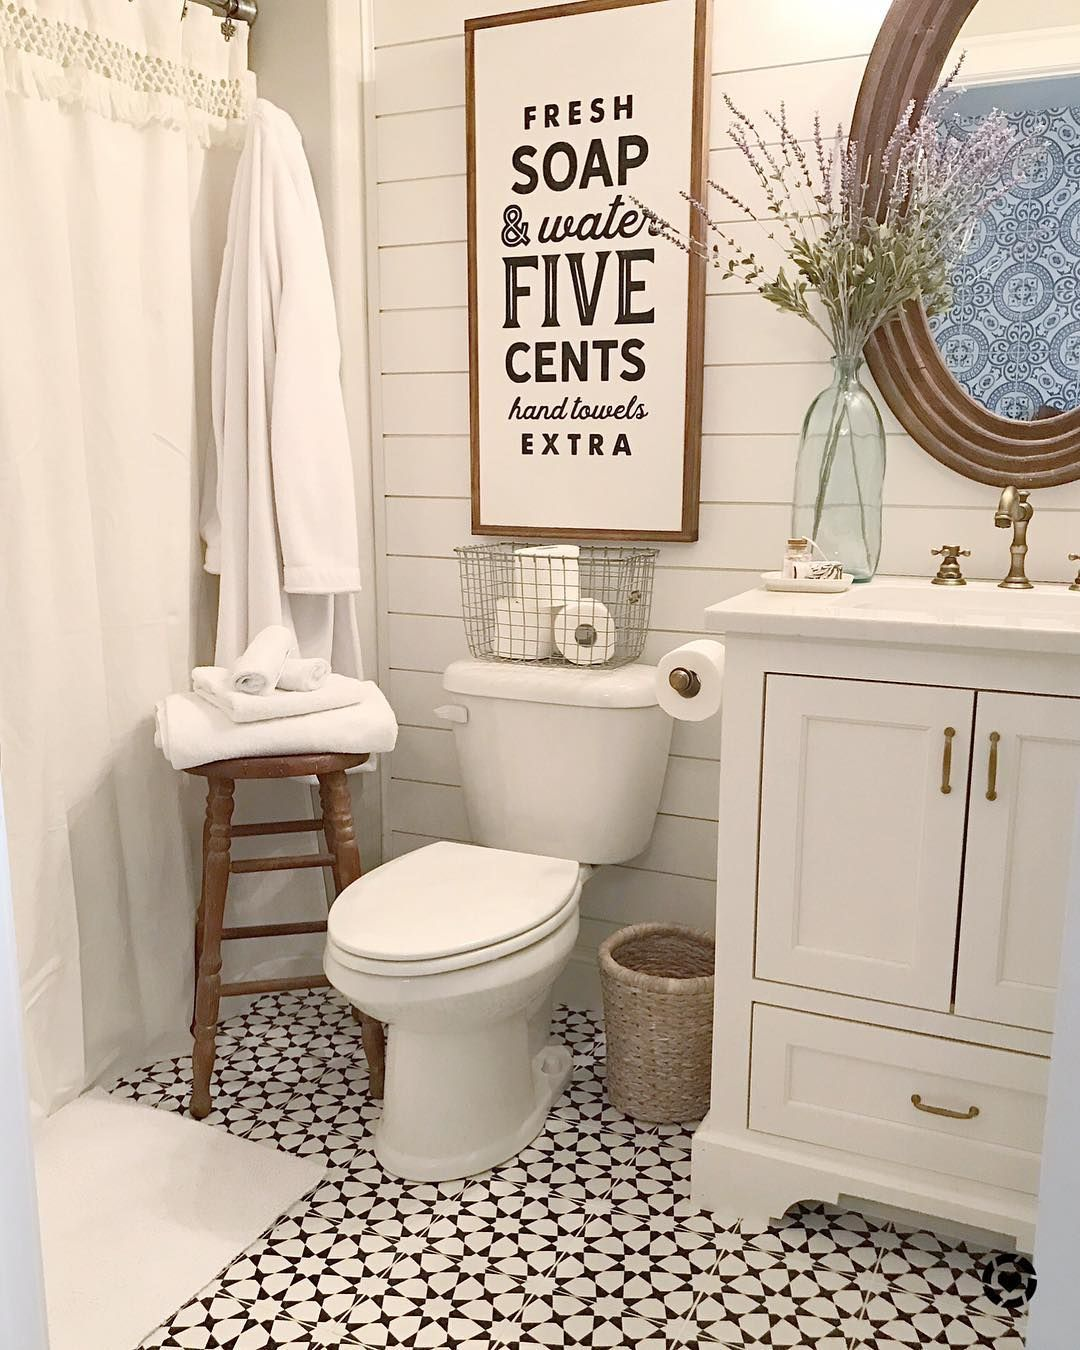 Pin By Stephanie Gleeson On Toiletd: Pin By Stephanie On Home Sweet Home